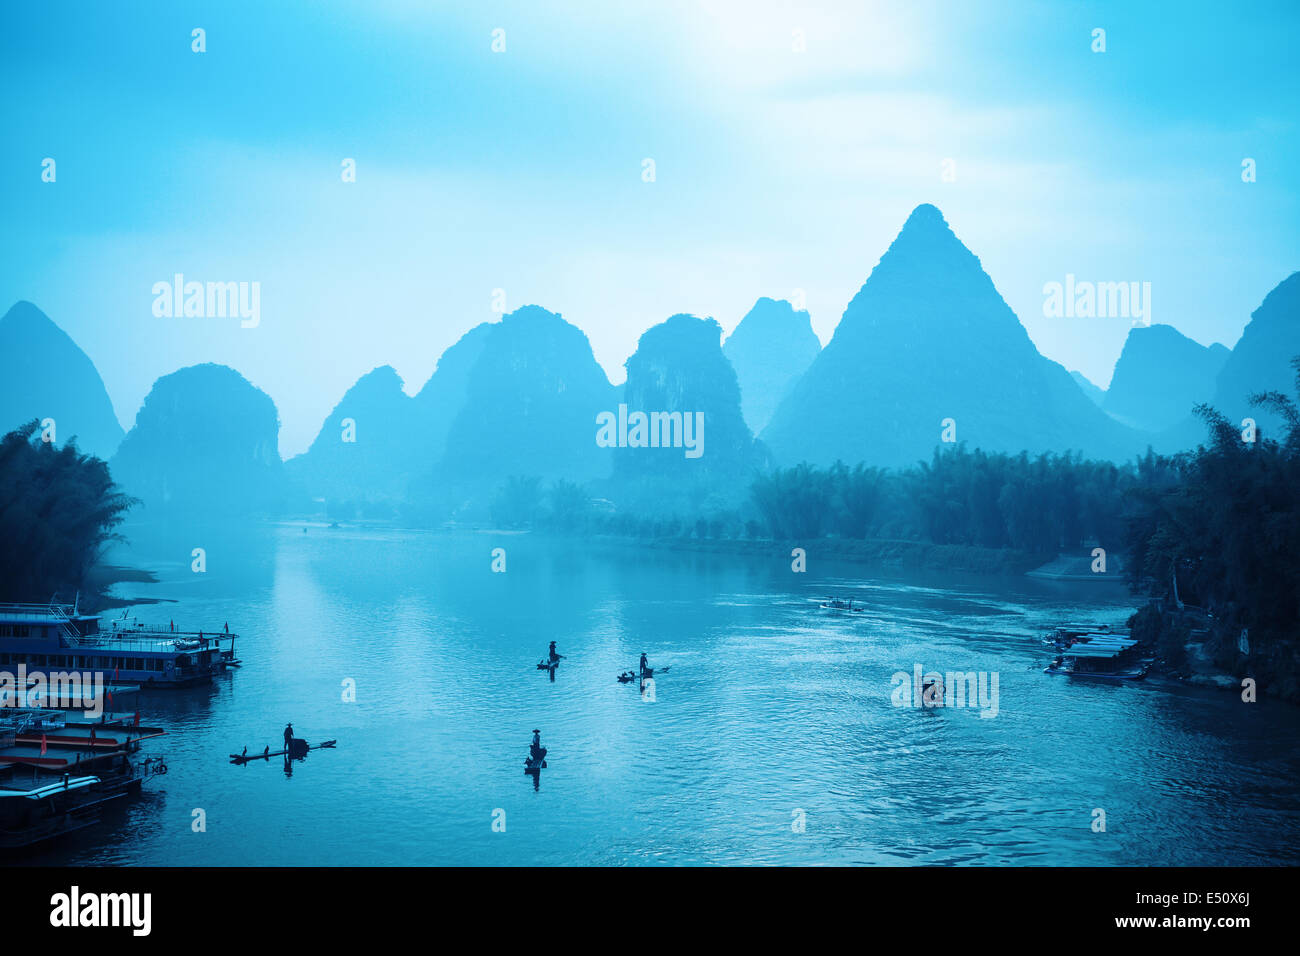 the scenery of guilin is world-renowned - Stock Image